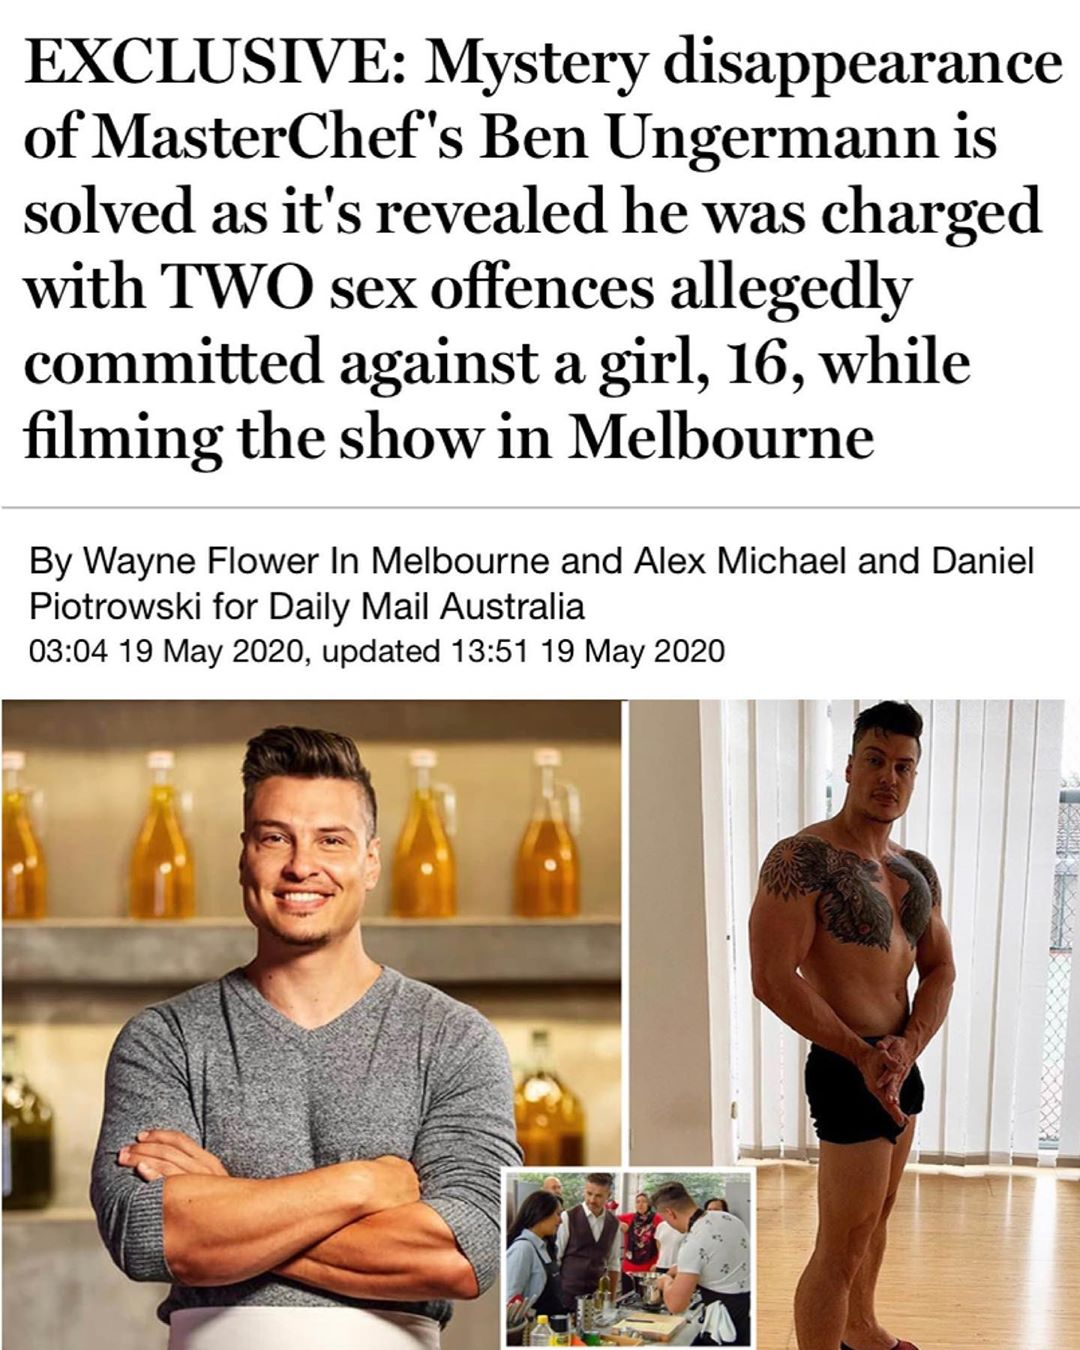 """EXCLUSIVE: Mystery disappearance of MasterChef's Ben Ungermann is solved as it's revealed he was charged with """"IWO sex offences allegedly committed against a girl, 16, while filming the show in Melbourne"""